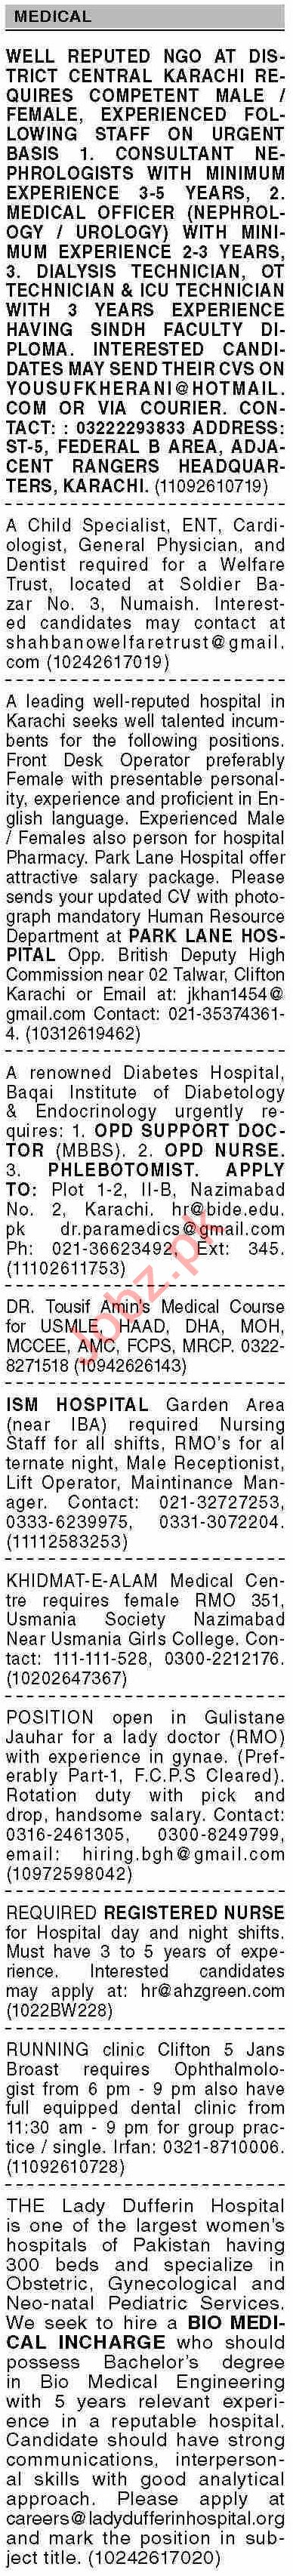 Dawn Sunday Classified Ads 27 June 2021 for Medical Staff